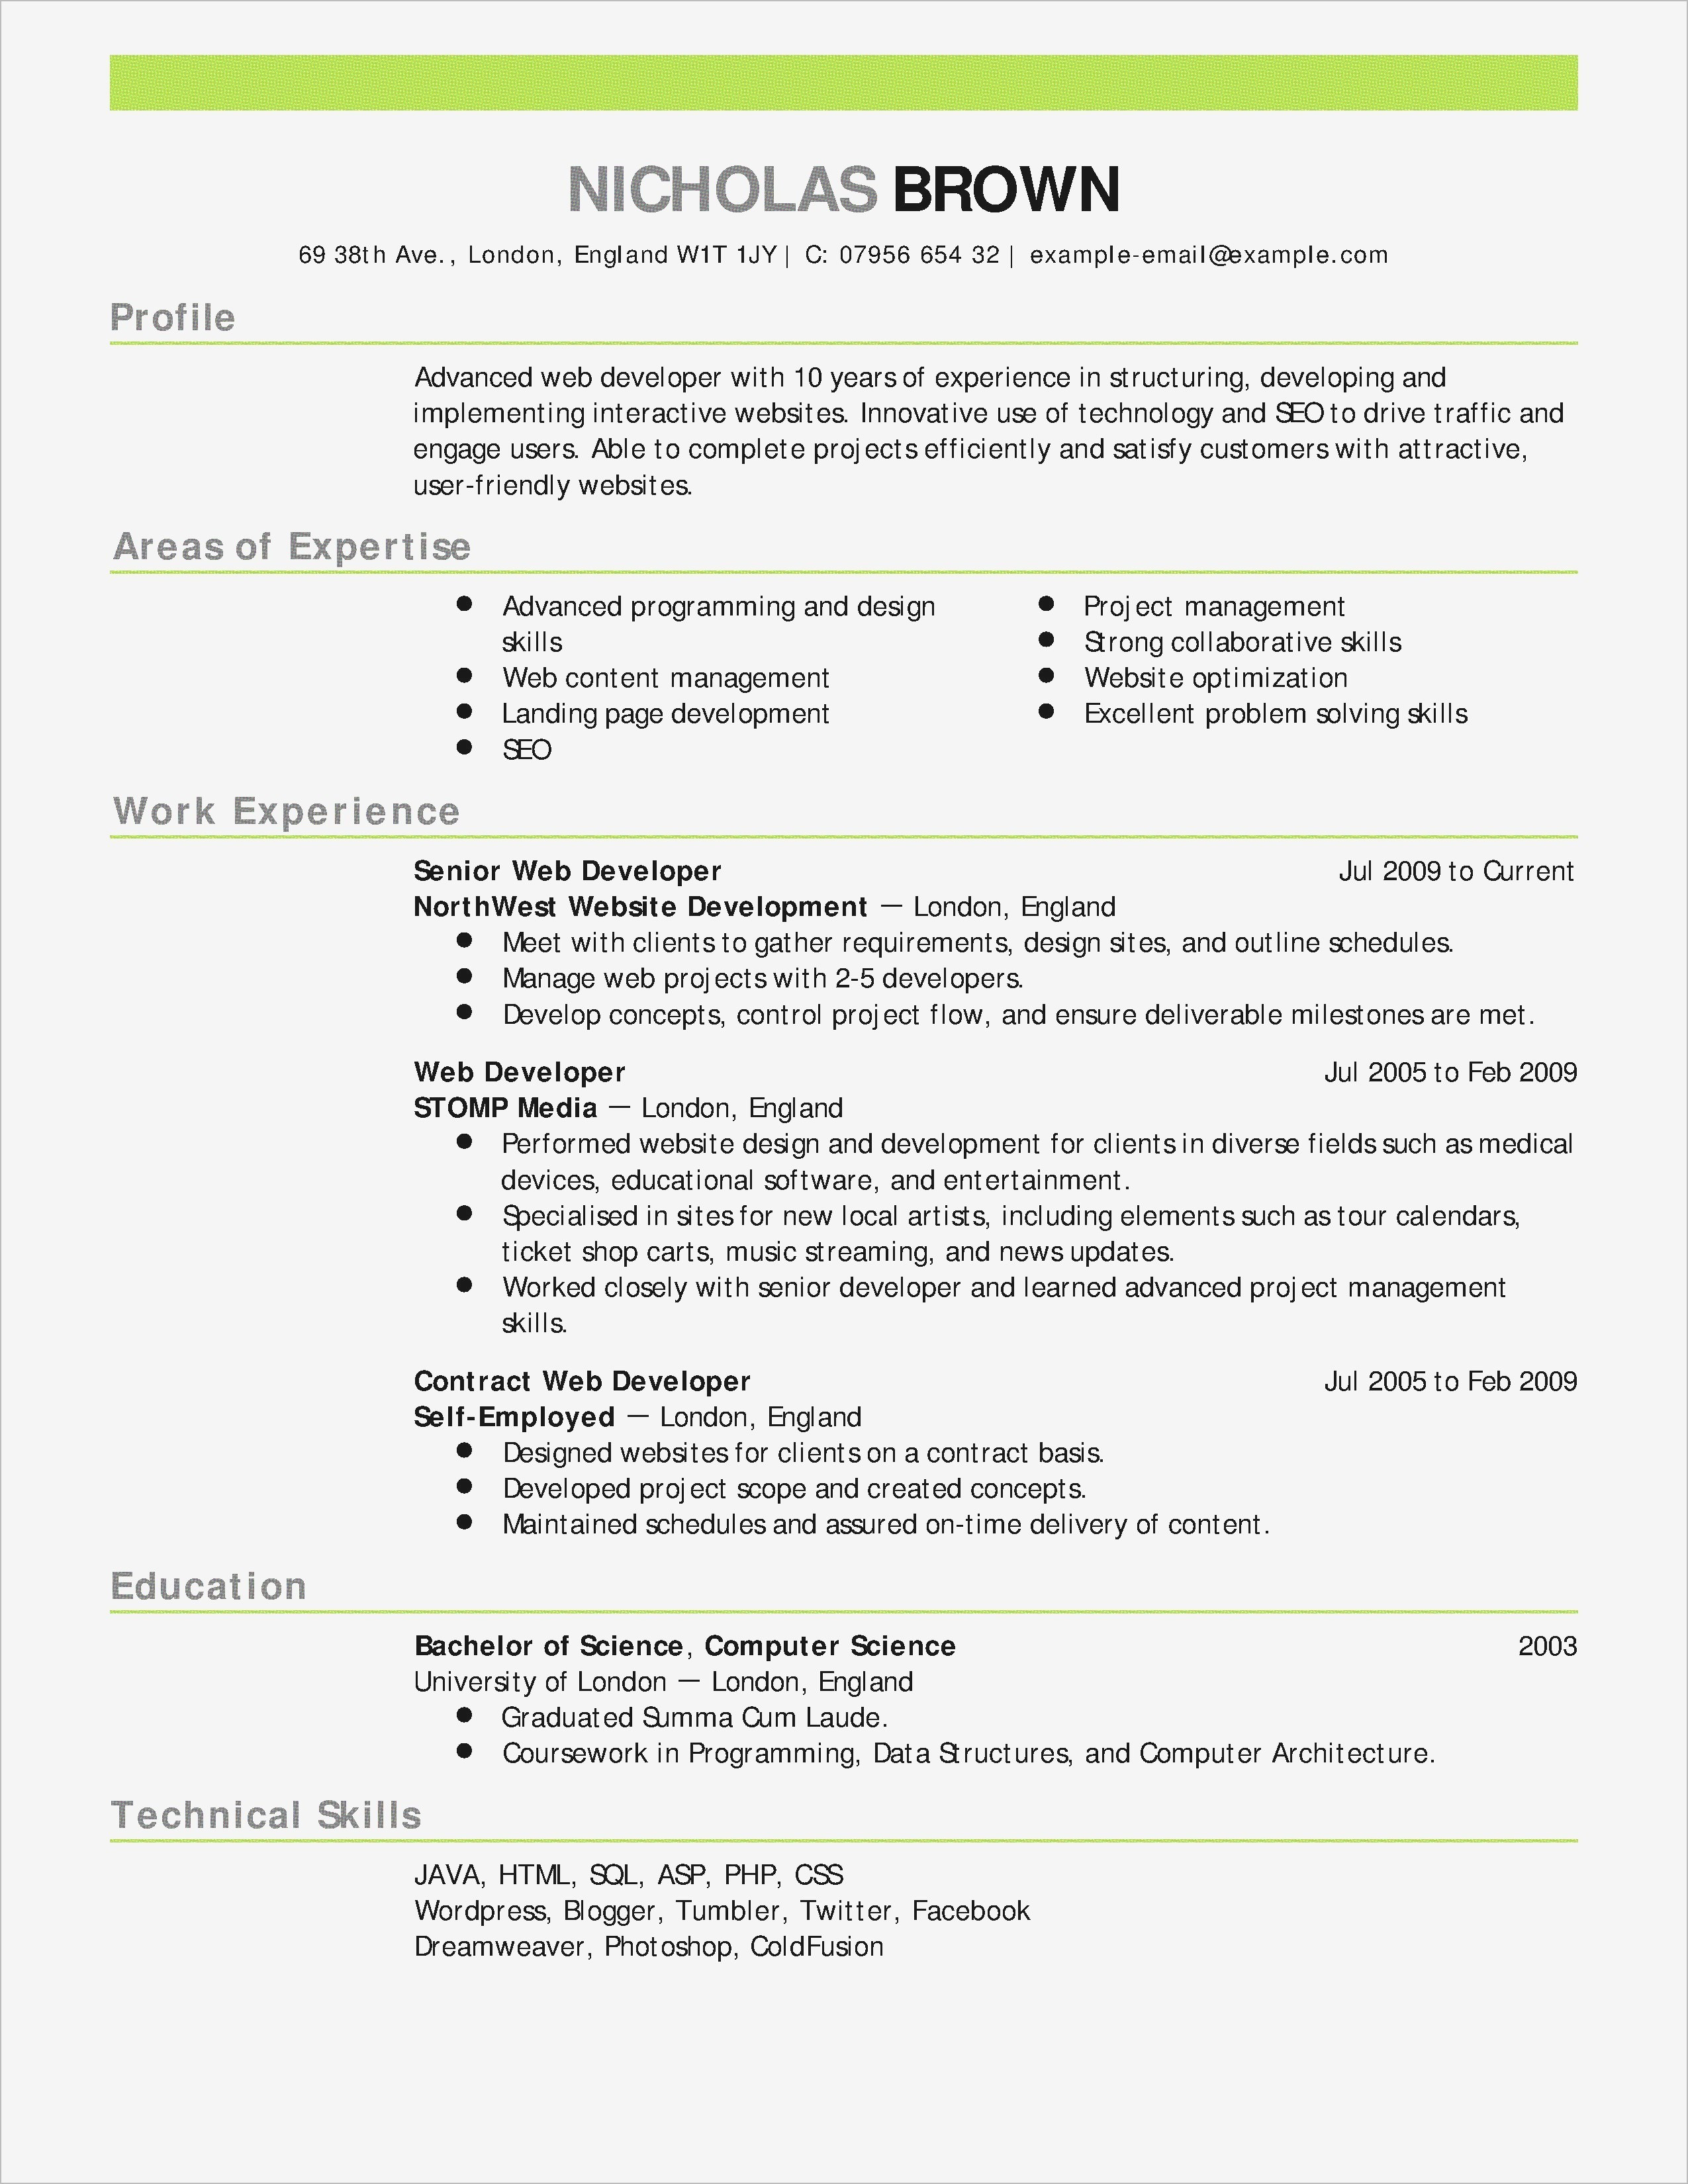 resume template word 2003 example-Elegant Free Resume Template for Word 14-h